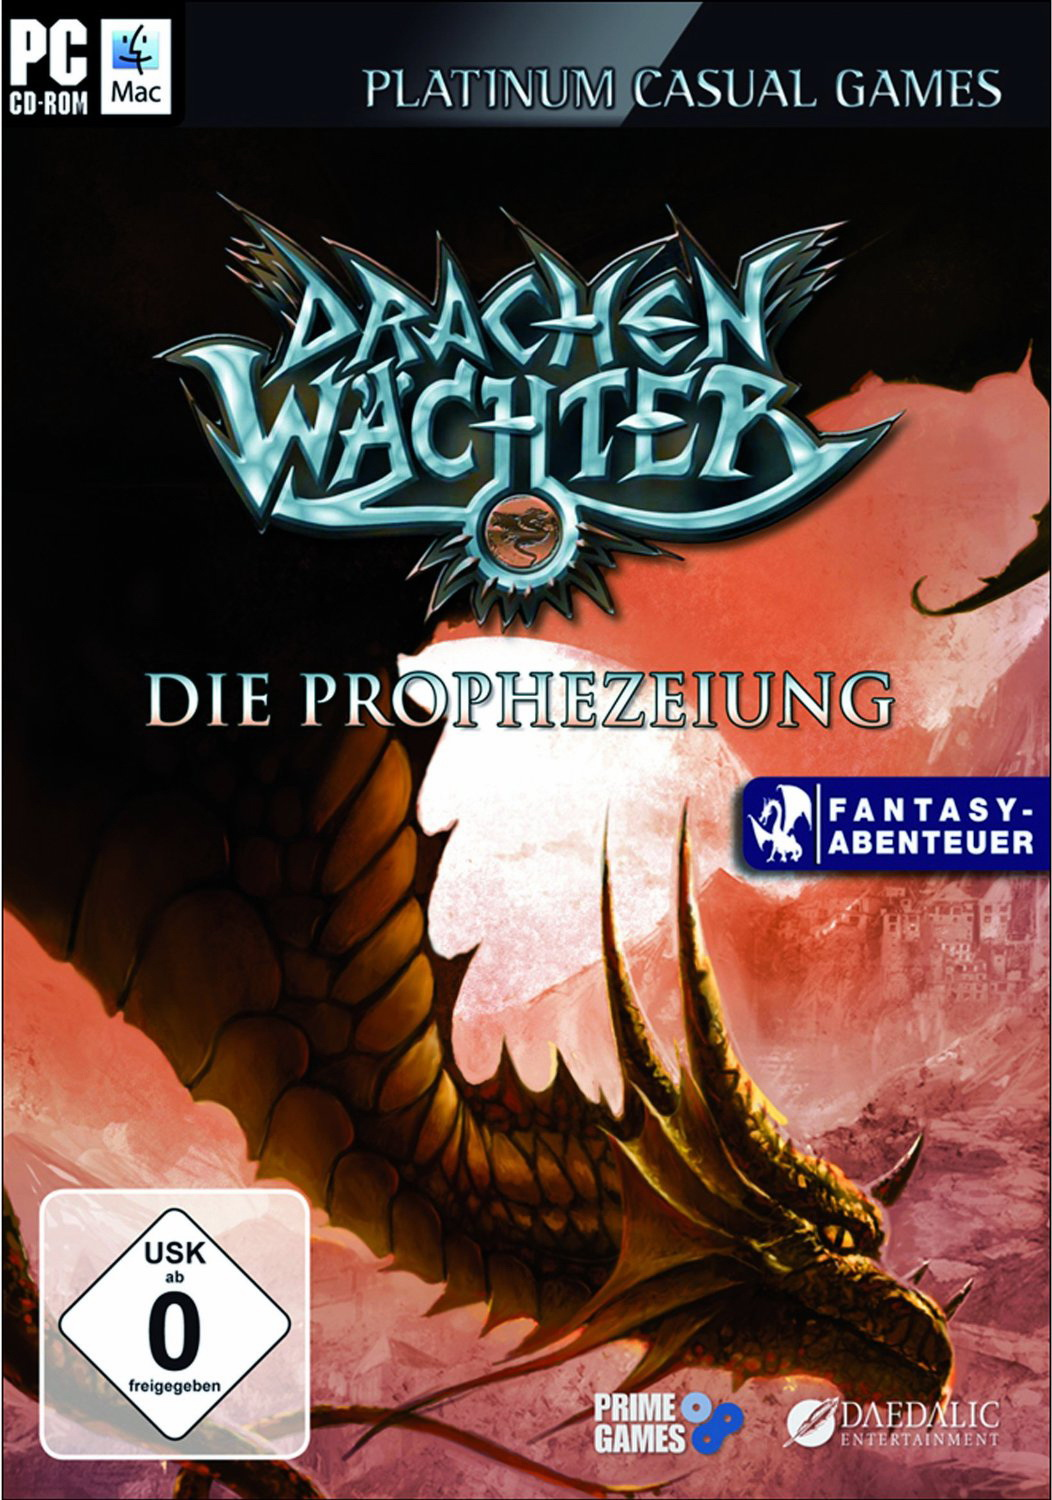 falko_loeffler_drachenwaechter_the_game